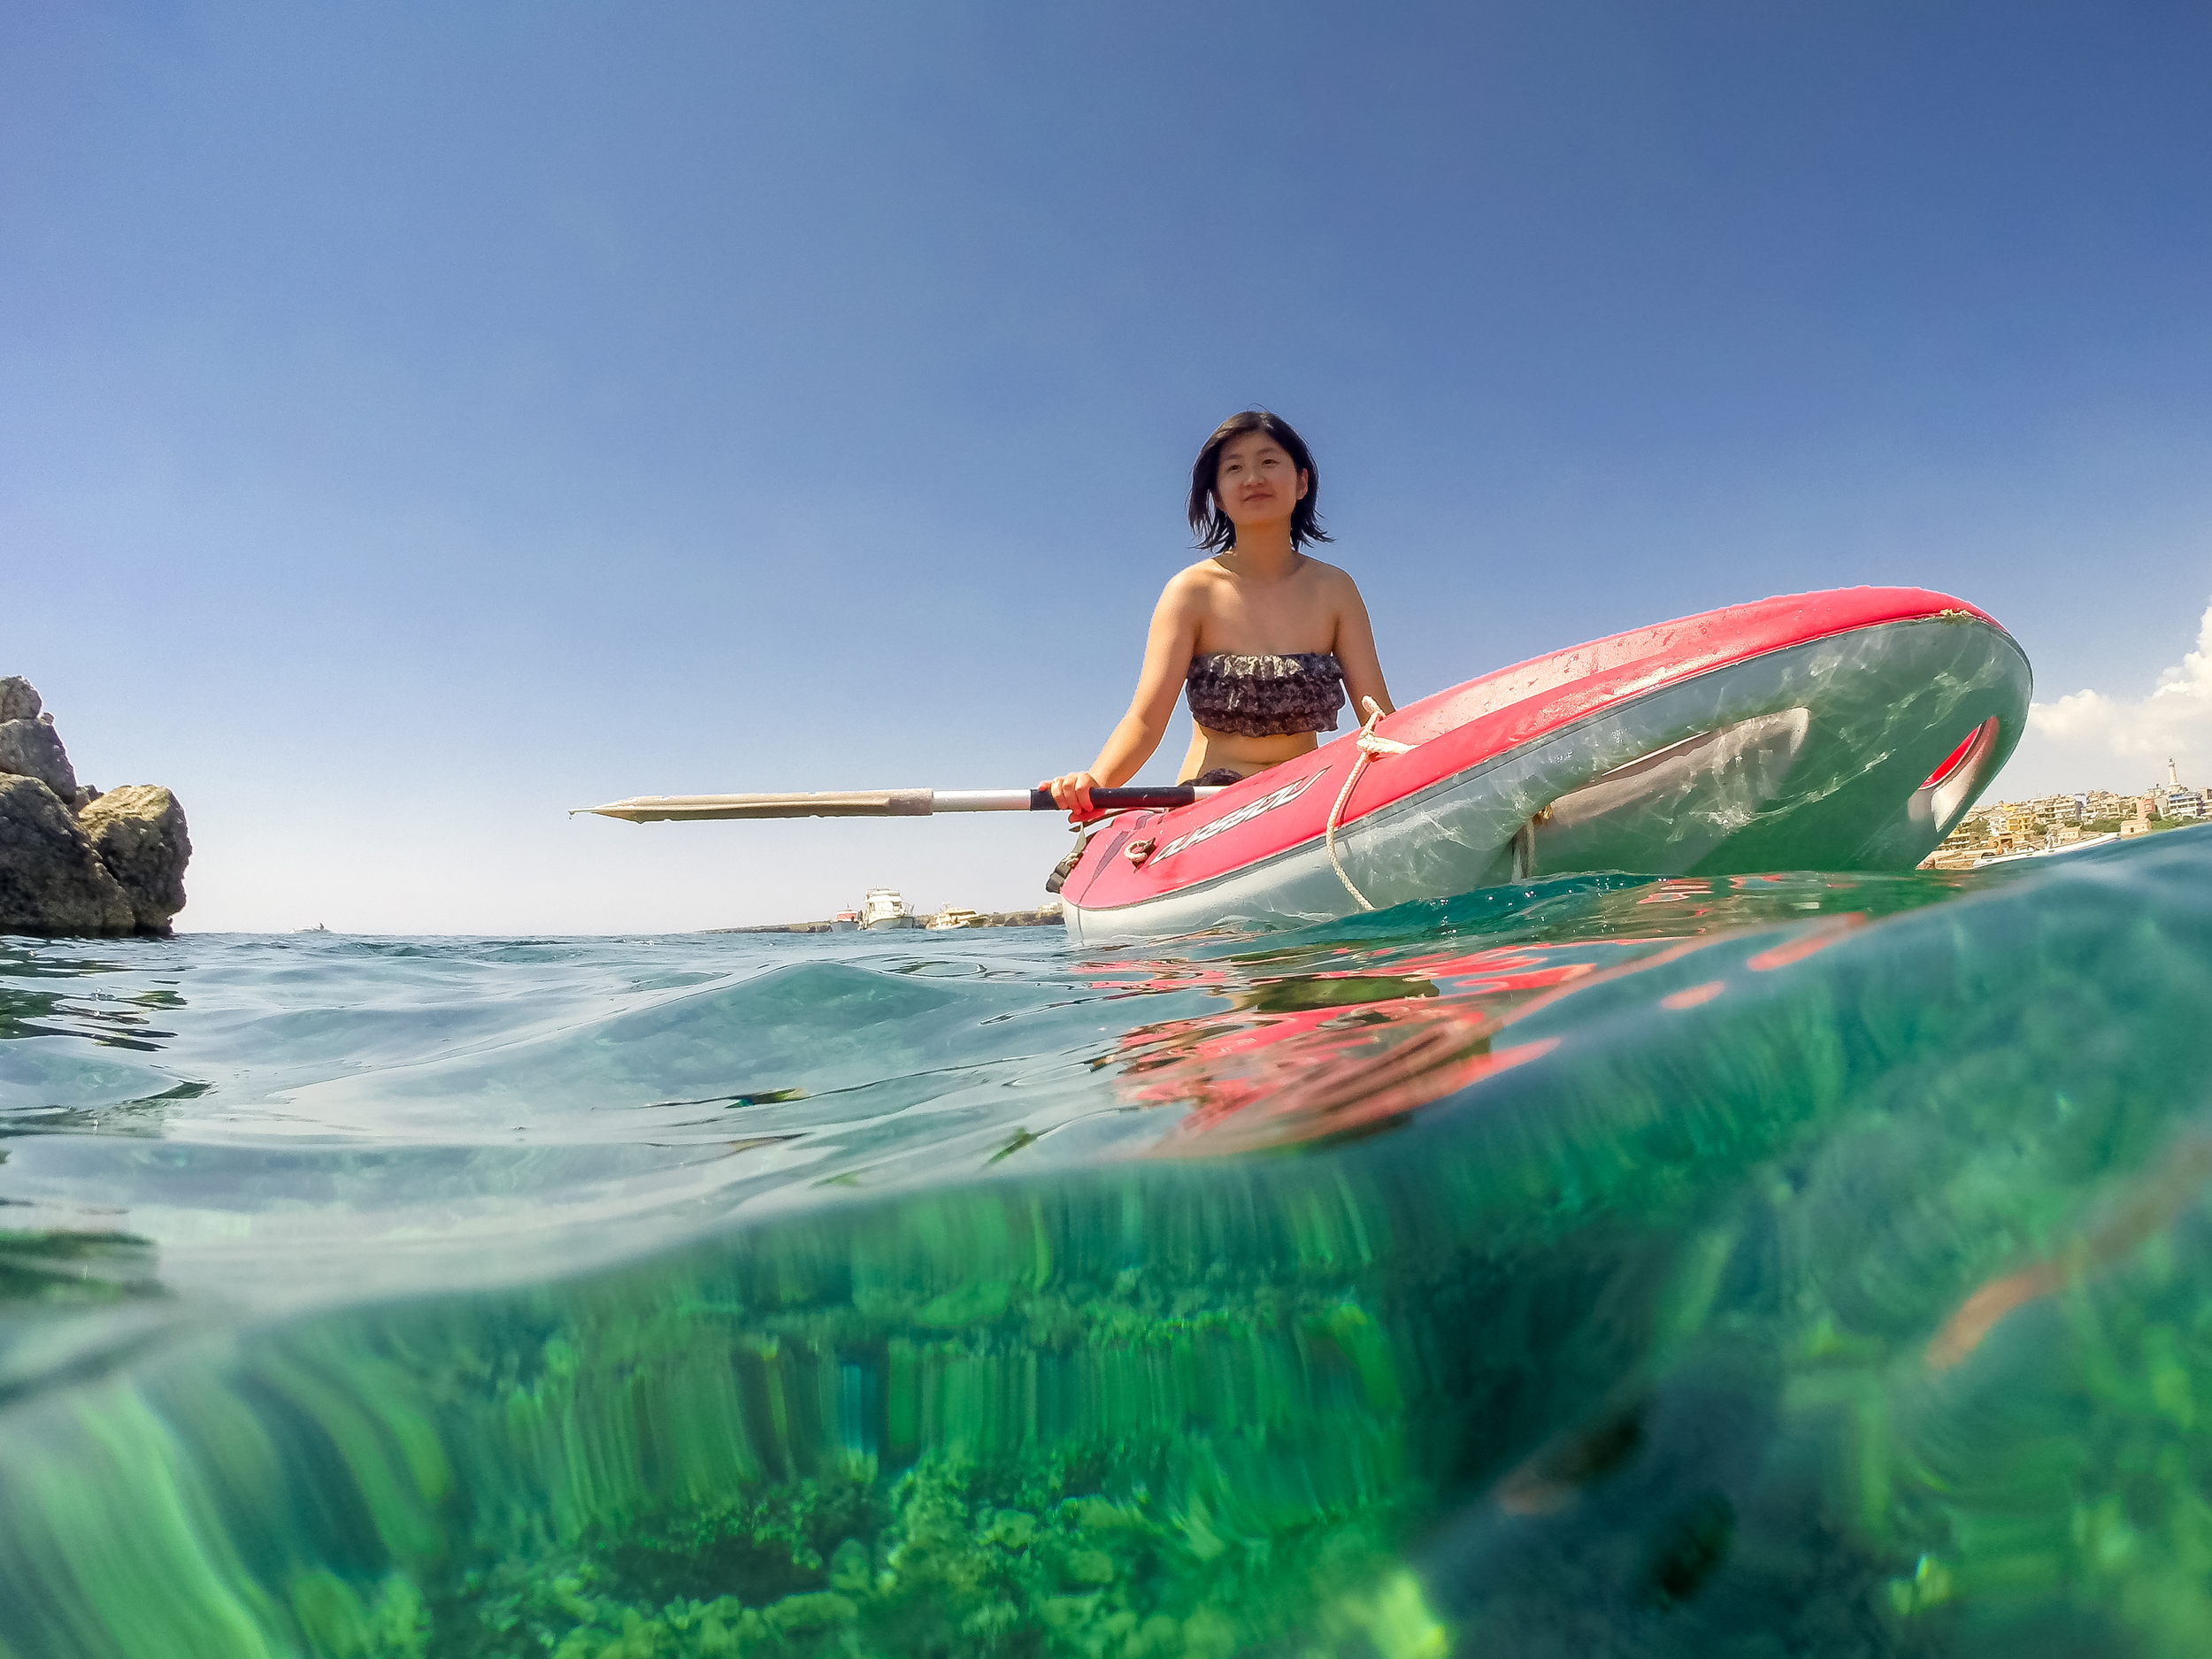 Helen went into a kayak for part of the time. I thought it was a good opportunity to take a portrait of her with the GoPro and this is what I got. I think it turned out fairly well, and it got featured on a travel site's Instagram feed when I posted it! If you don't follow me yet on there you should as I post great photos often first on there.